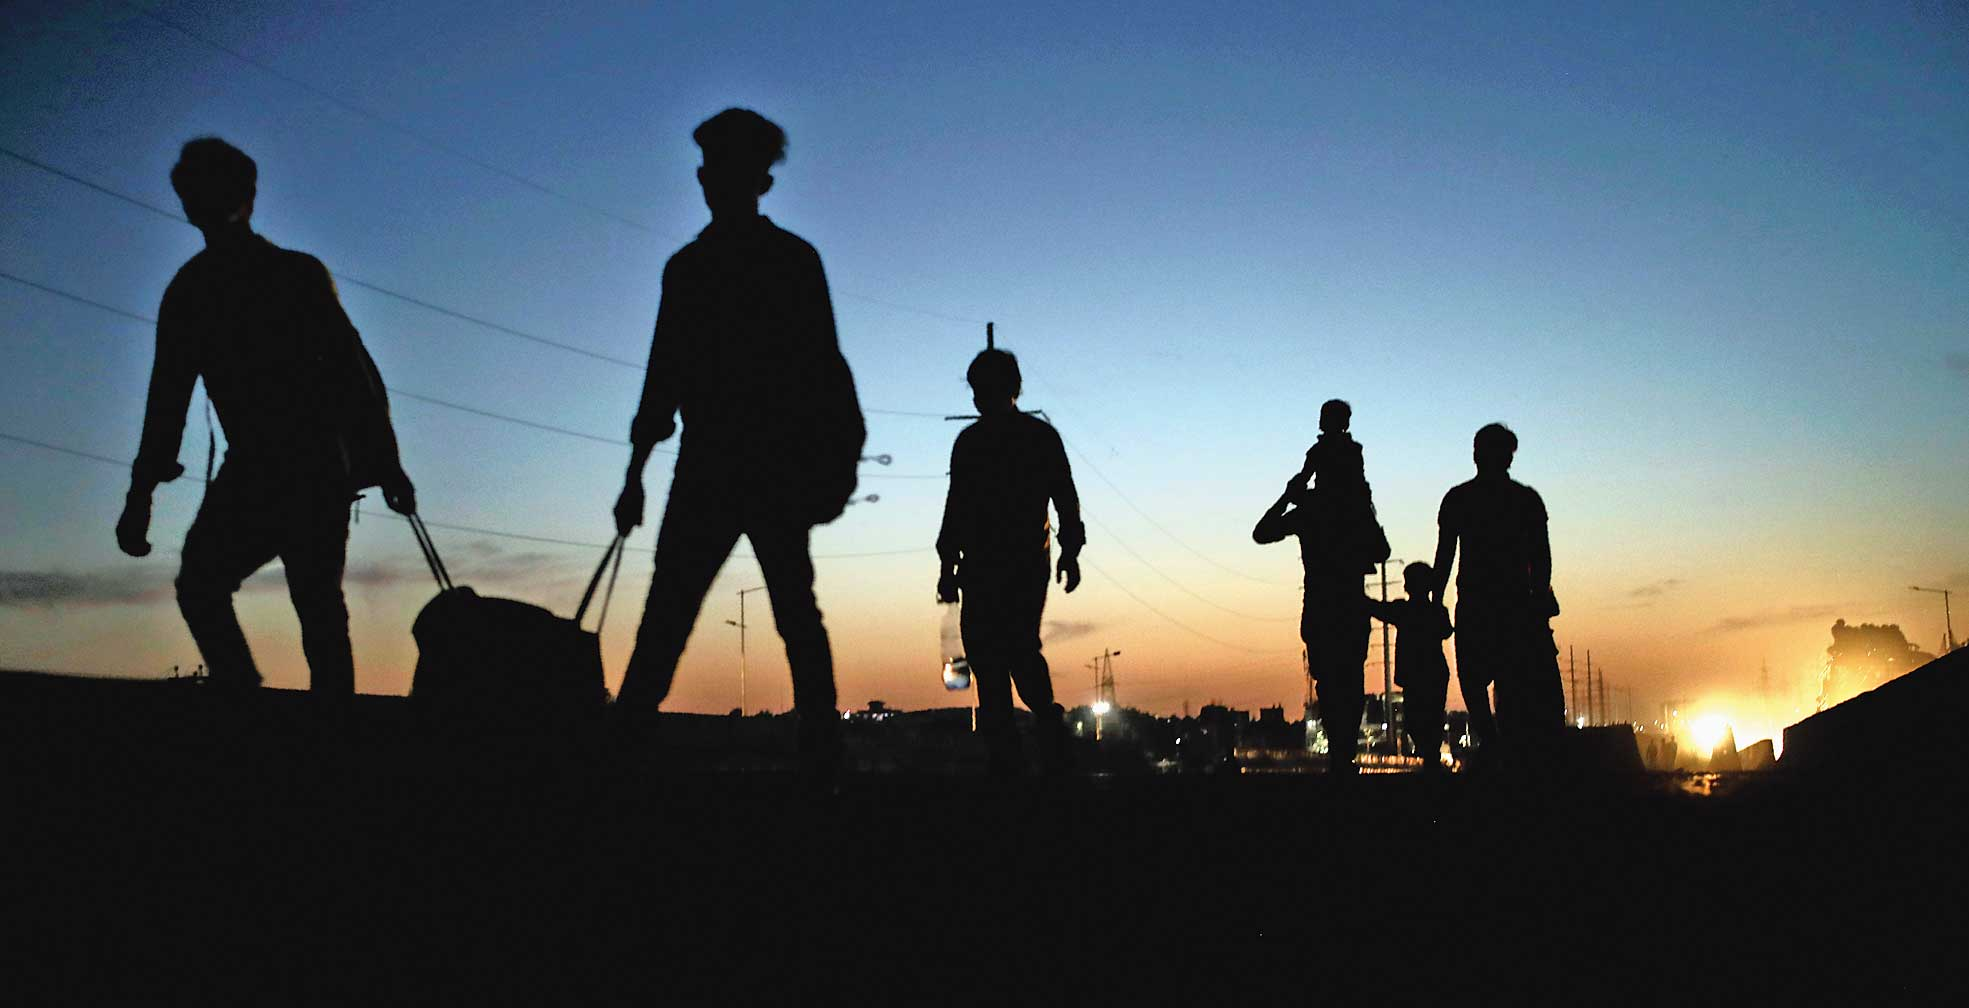 Migrant labourers and their family members are silhouetted as they leave New Delhi on March 28.